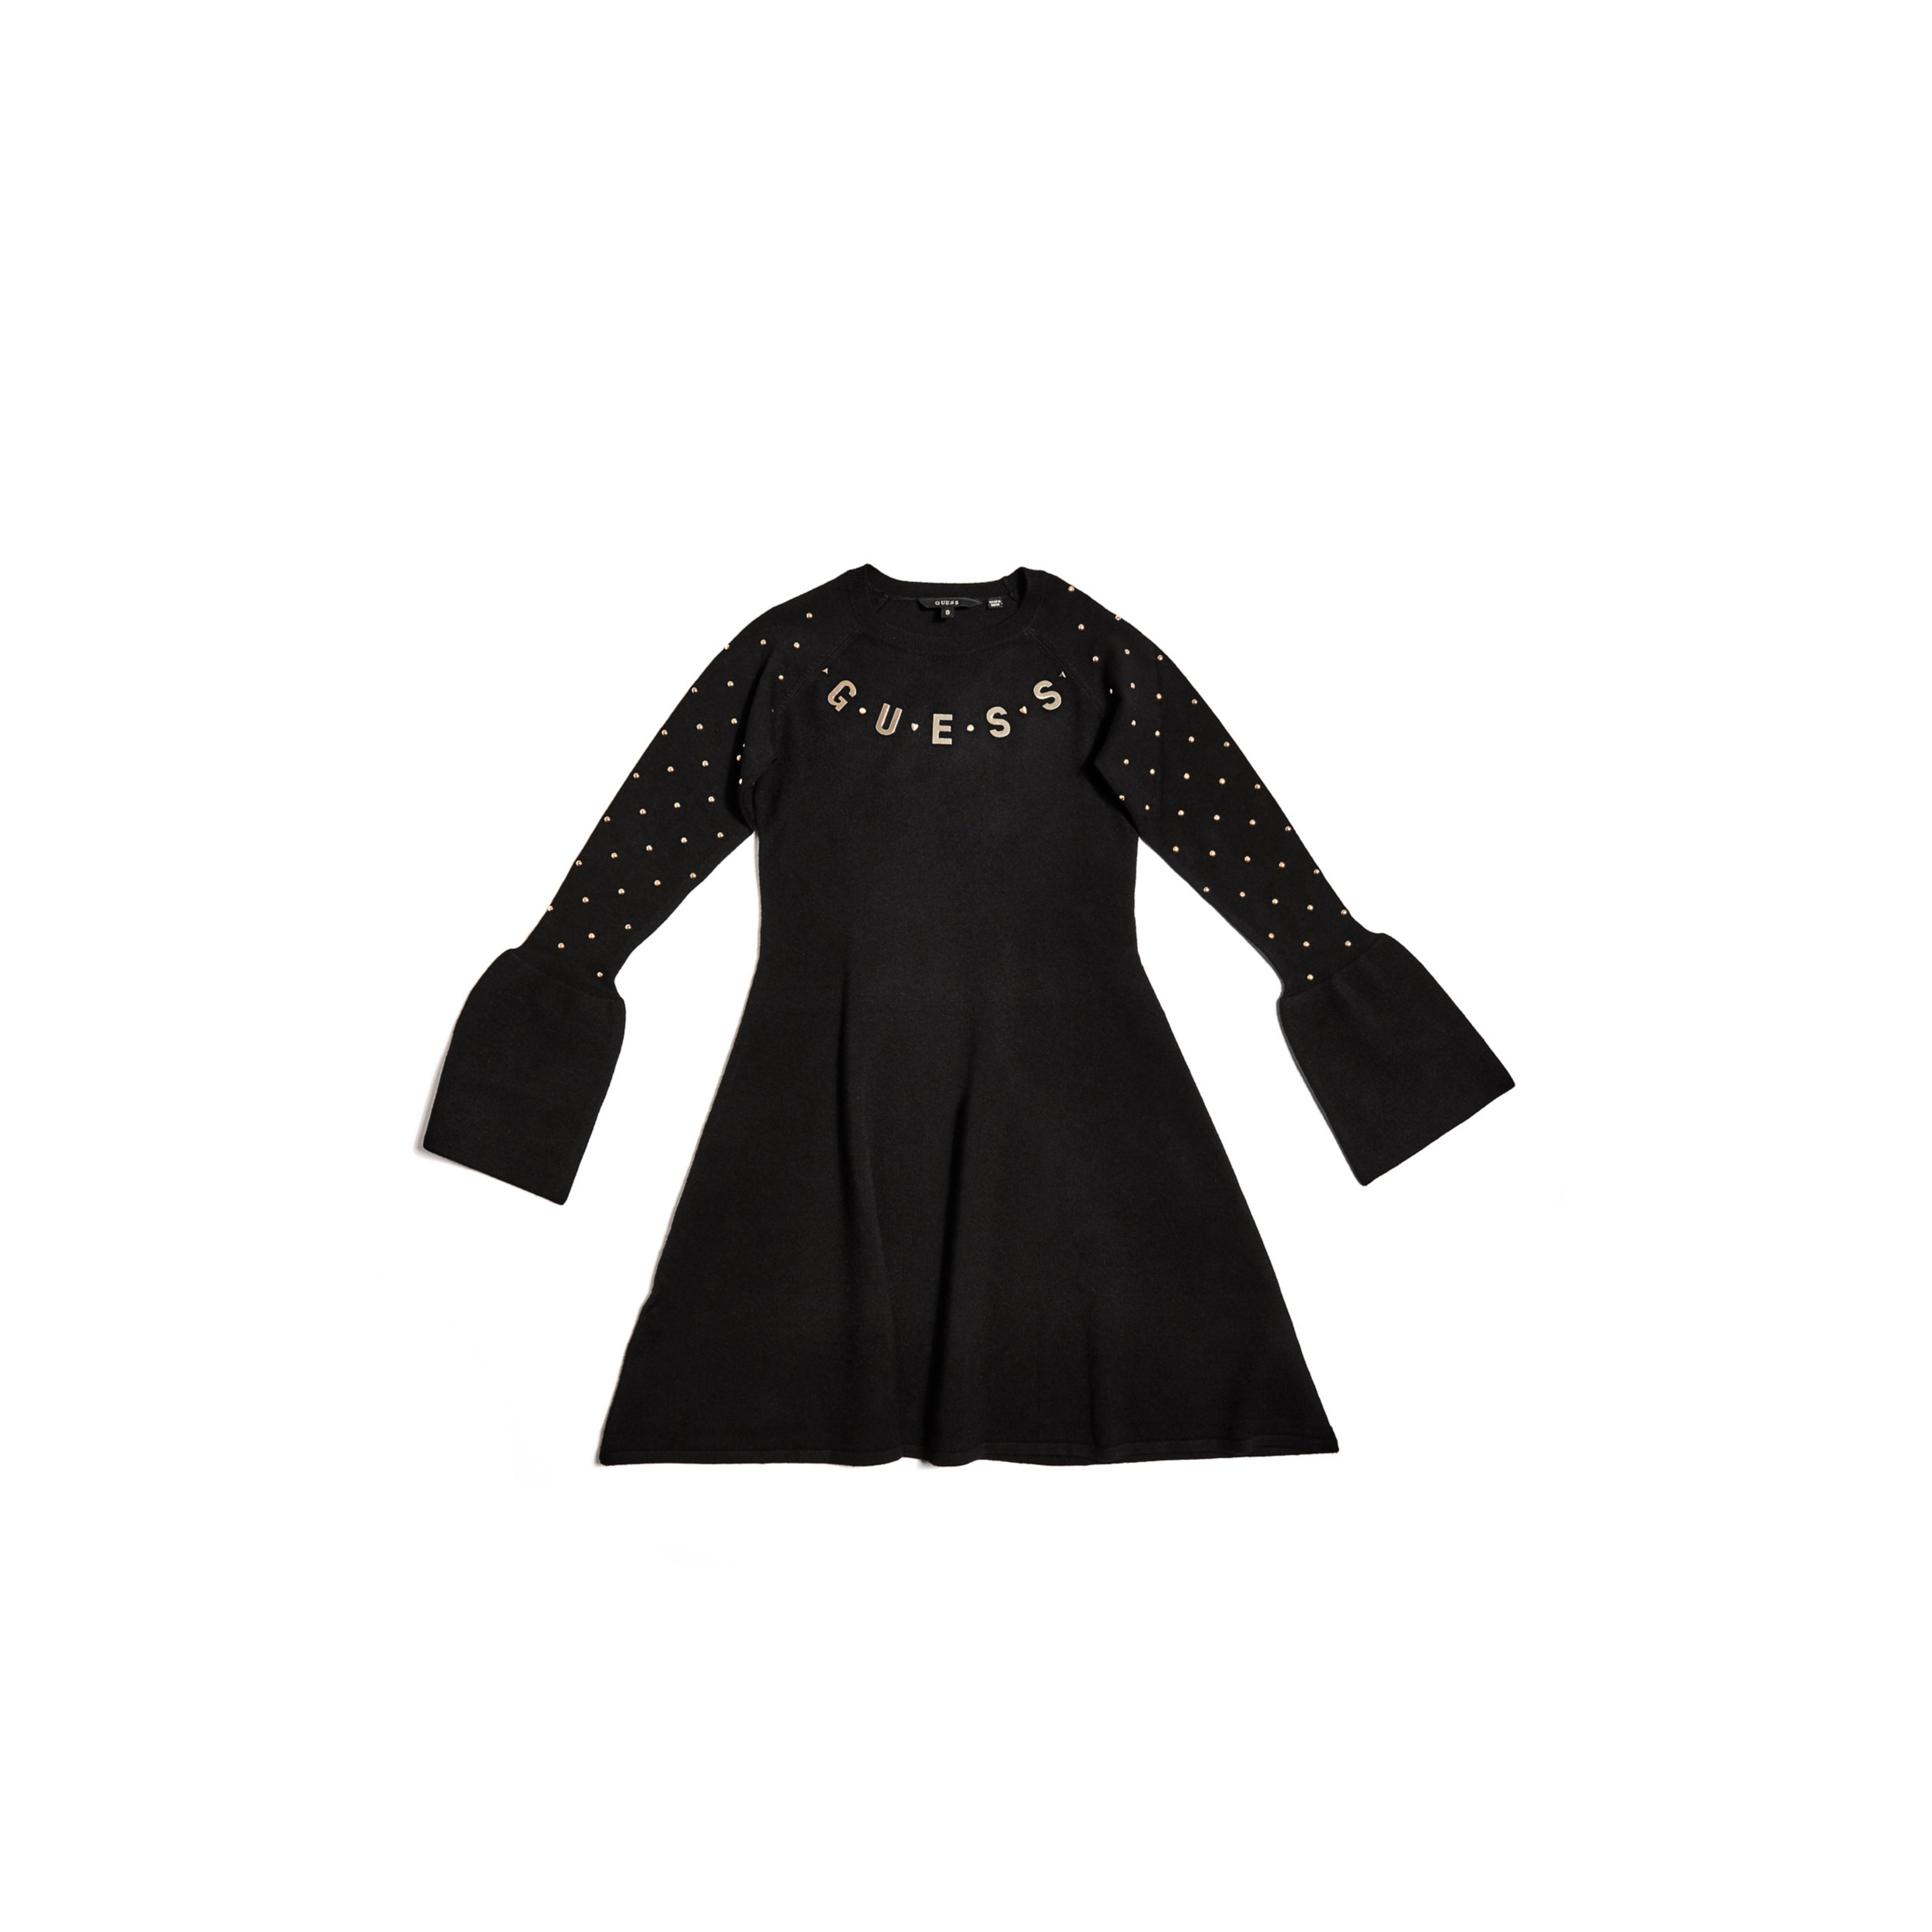 b673d585c81 Lyst - Guess Studded Sweater Dress (7-16) in Black